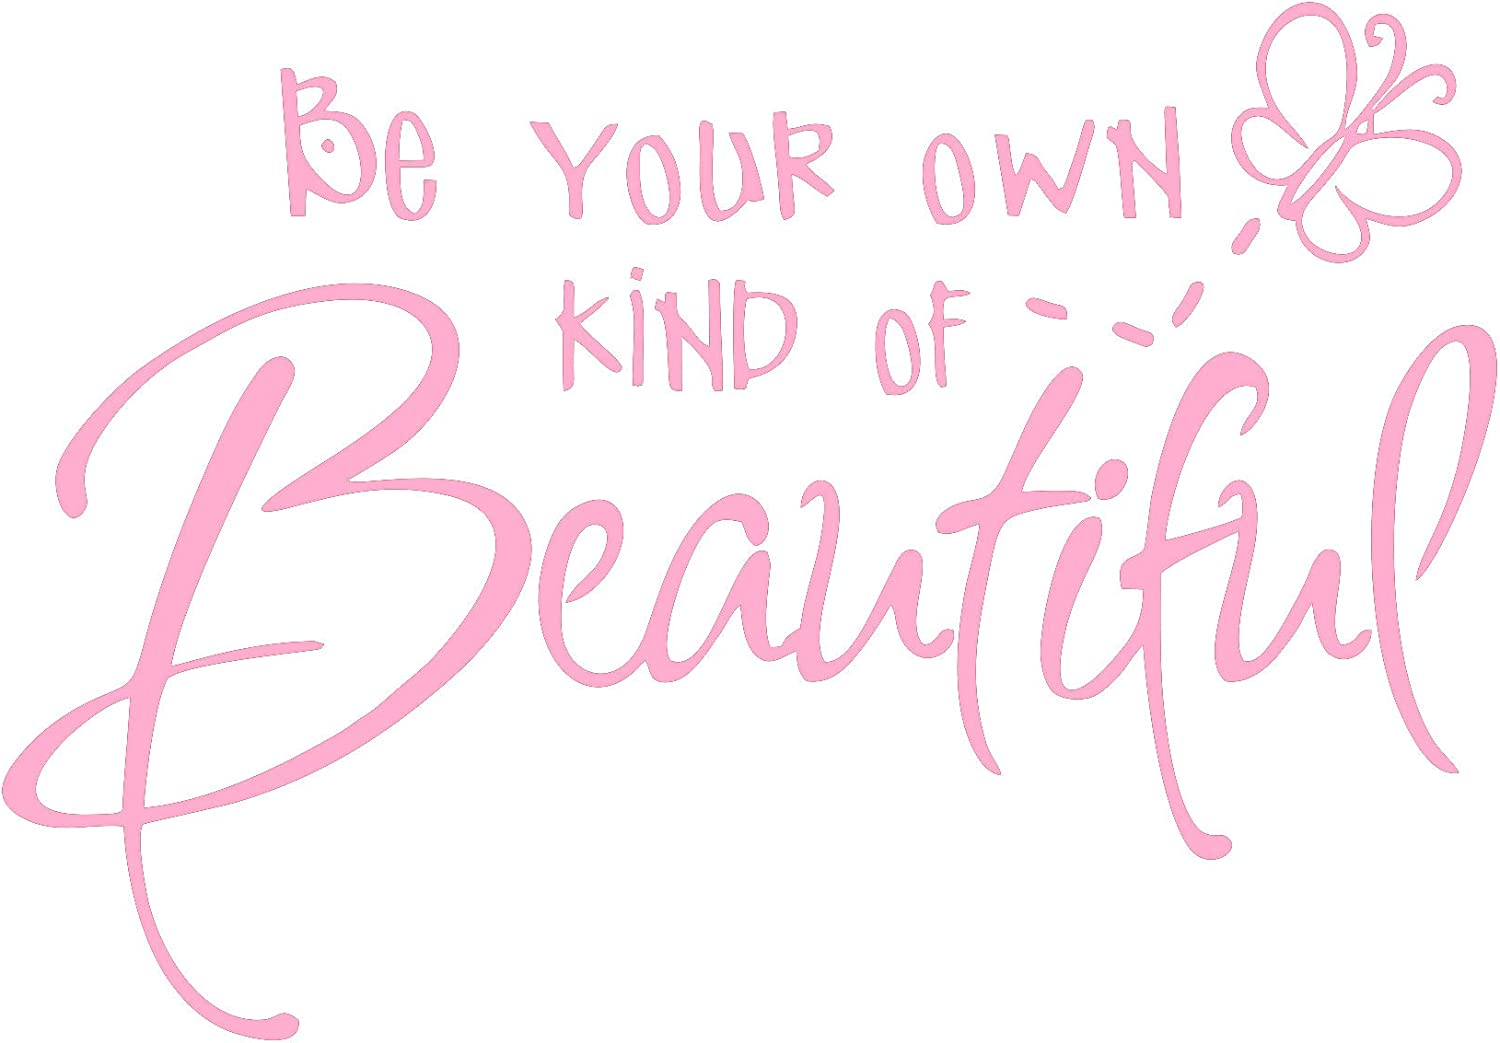 Be Your Own Kind of Beautiful Wall Stickers Quote, CUNYA DIY Vinyl Butterfly Decal Wallpaper Wall Decor for Bedroom Teen Girl Home Decoration (Pink)